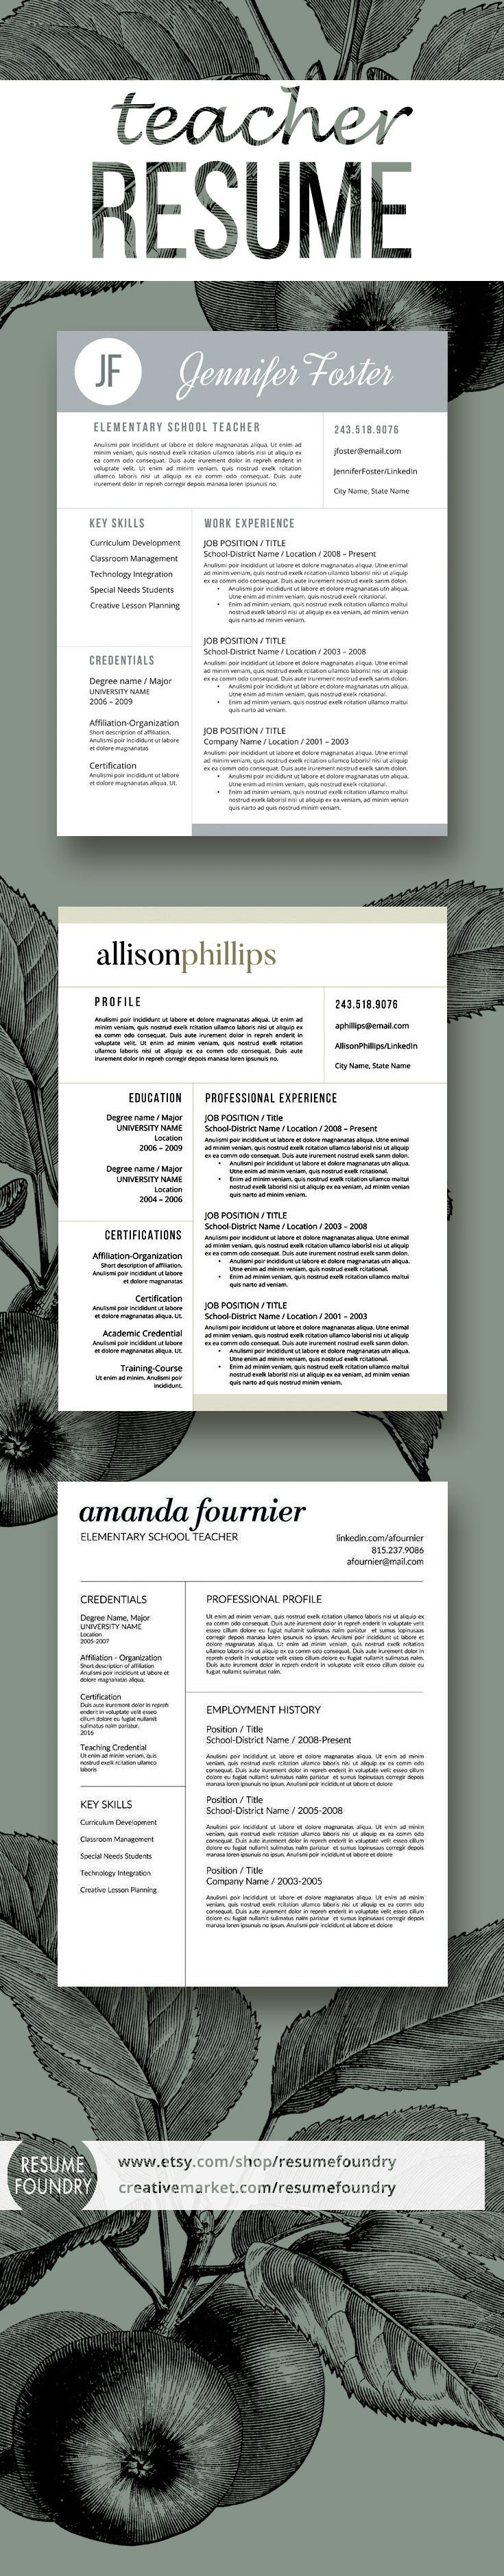 Selection of great teacher resumes, simple, clean, easy to use.